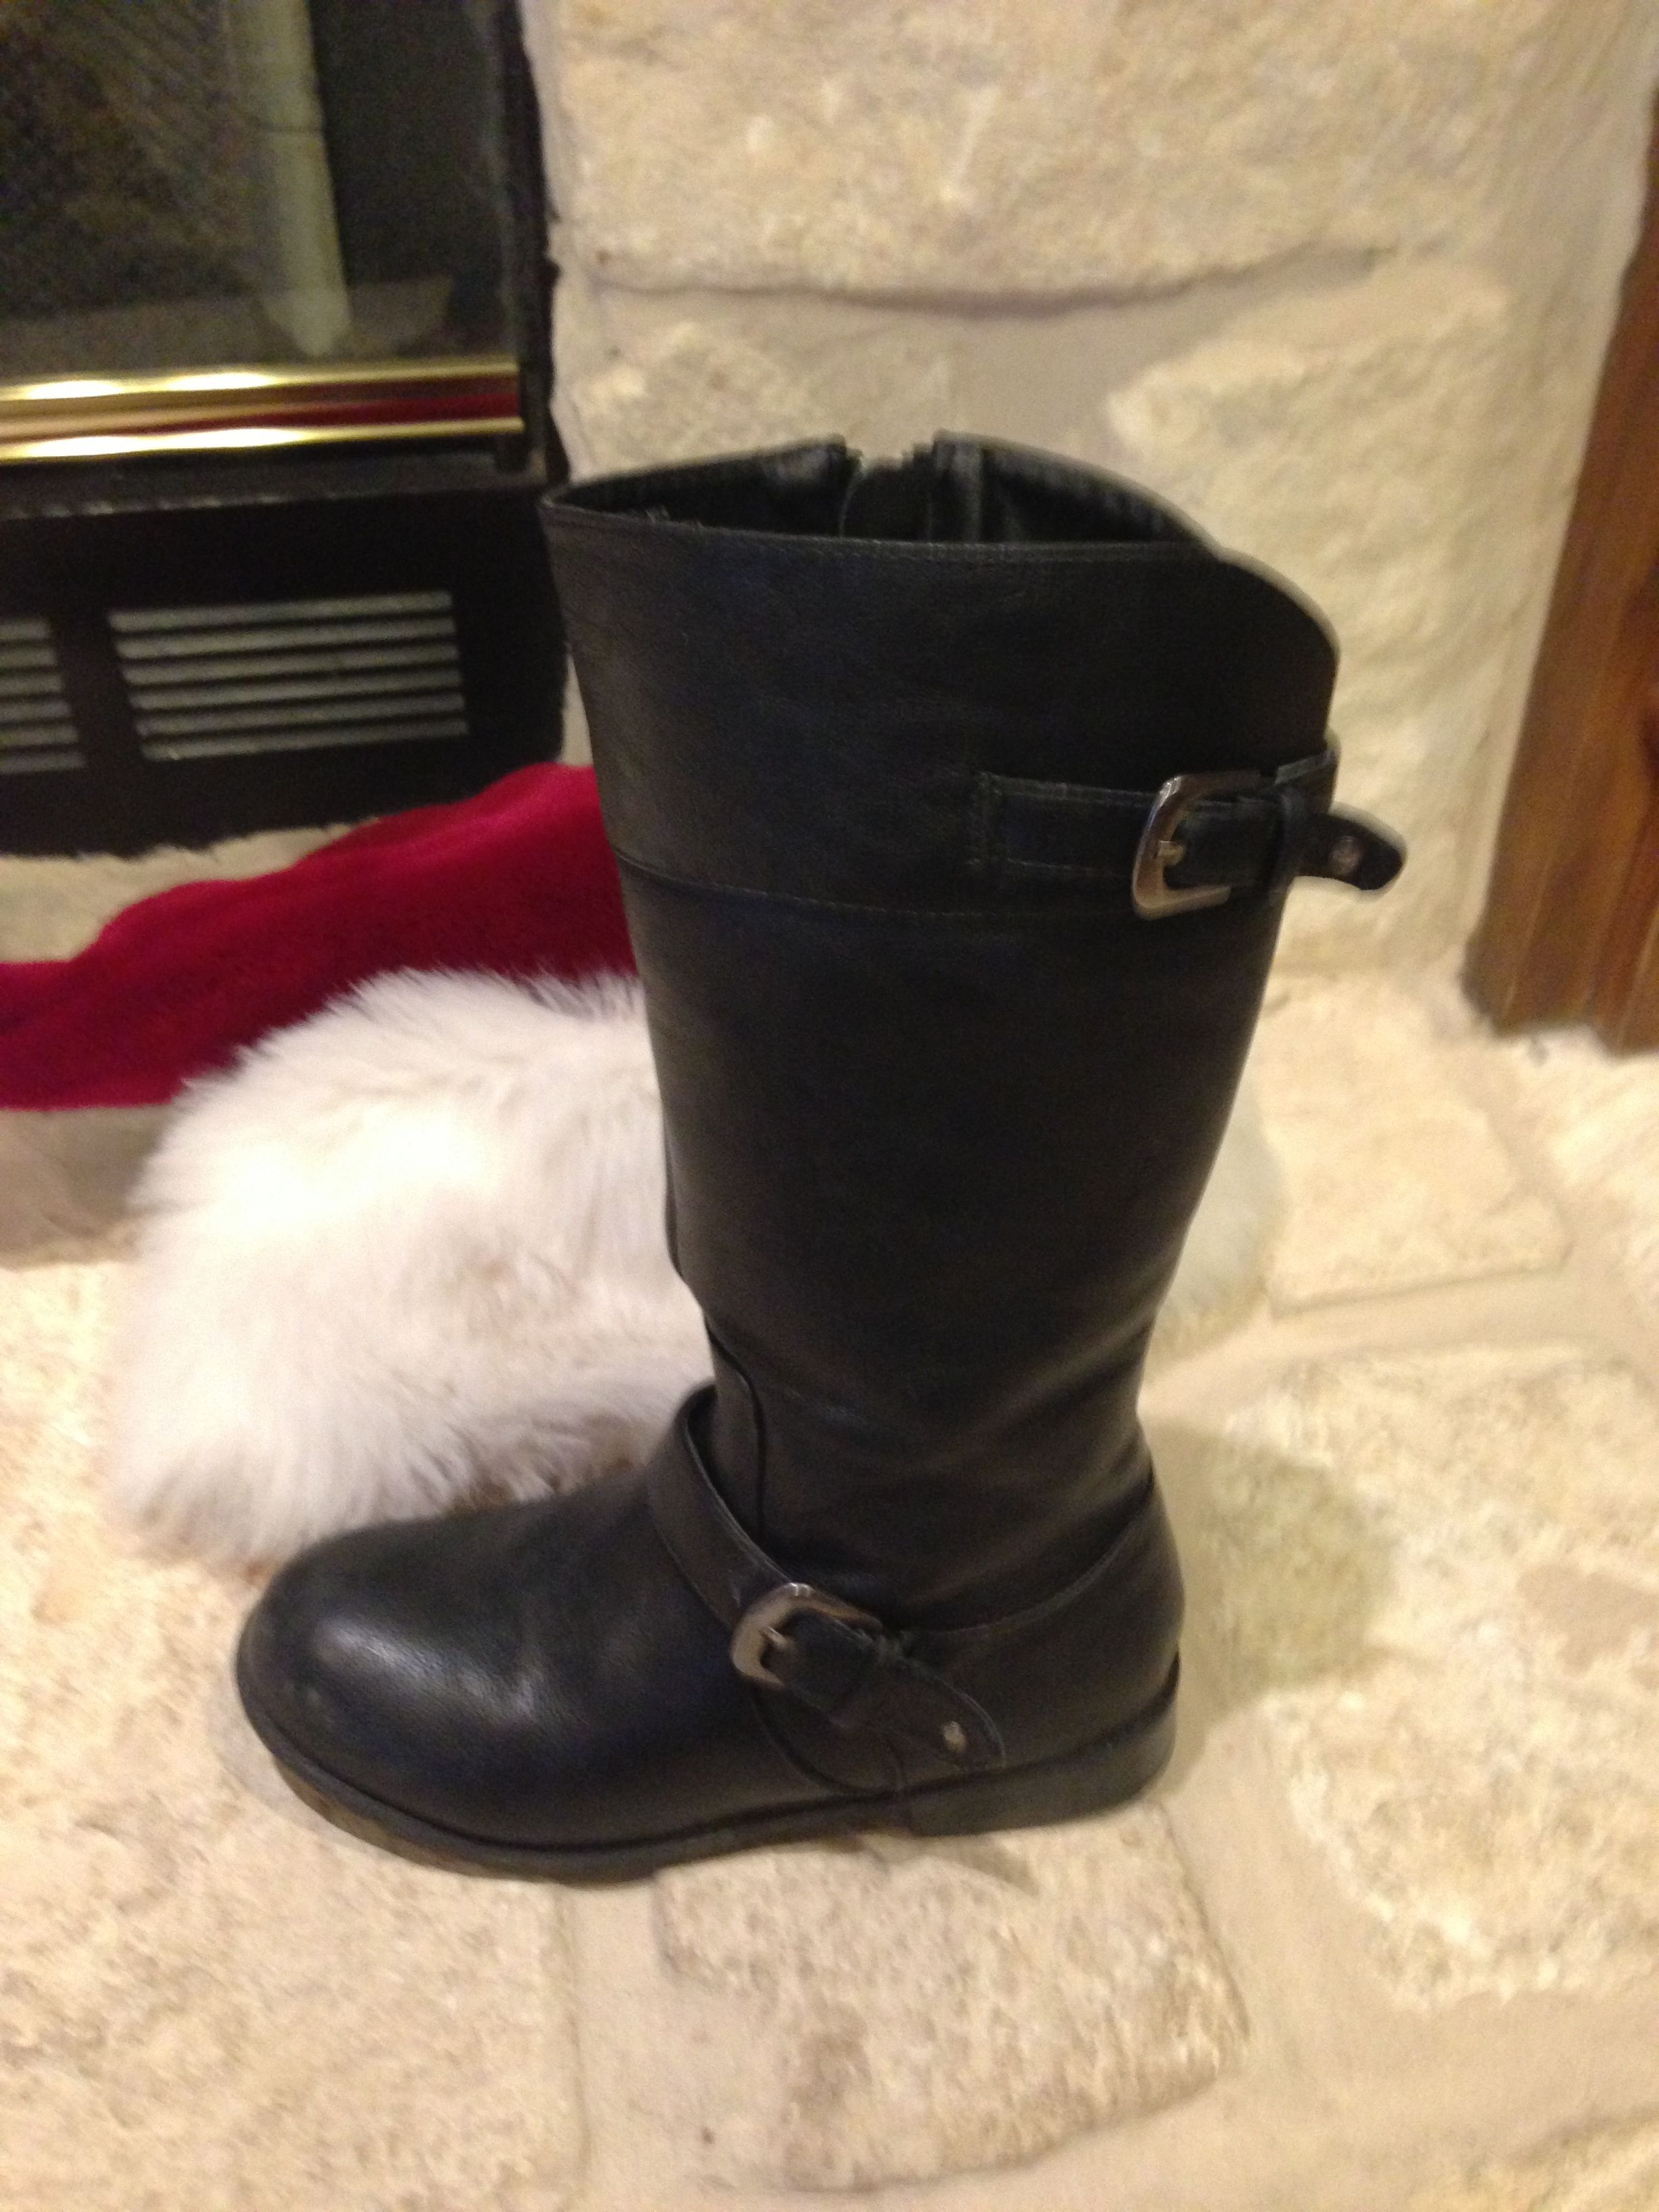 ab53447baef4 Great looking boot